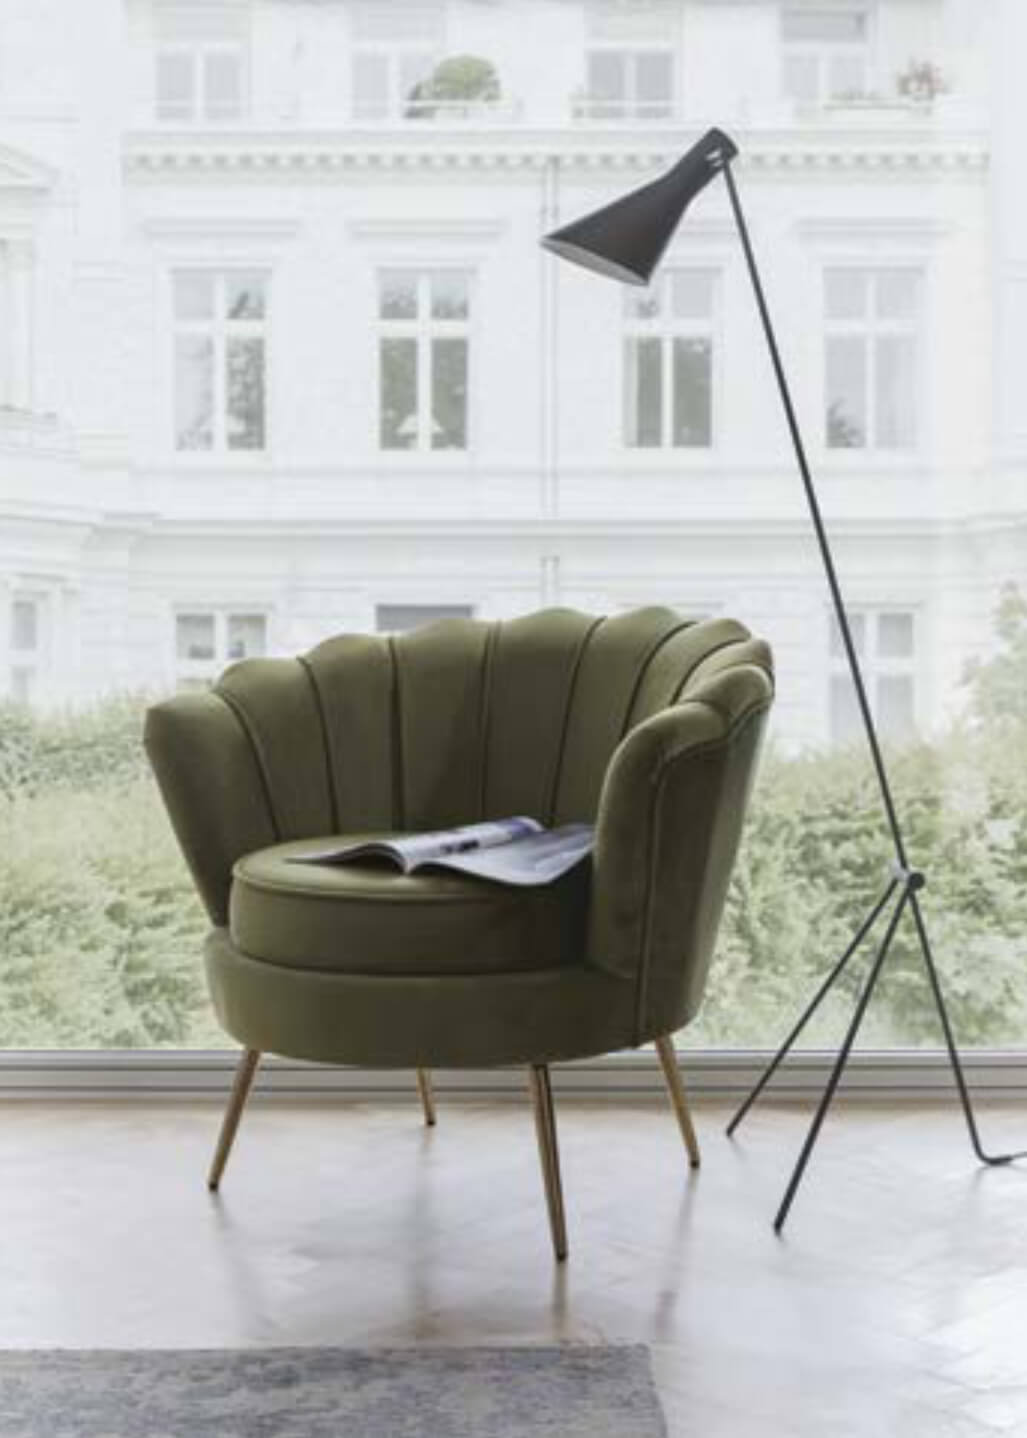 Green armchair with lamp